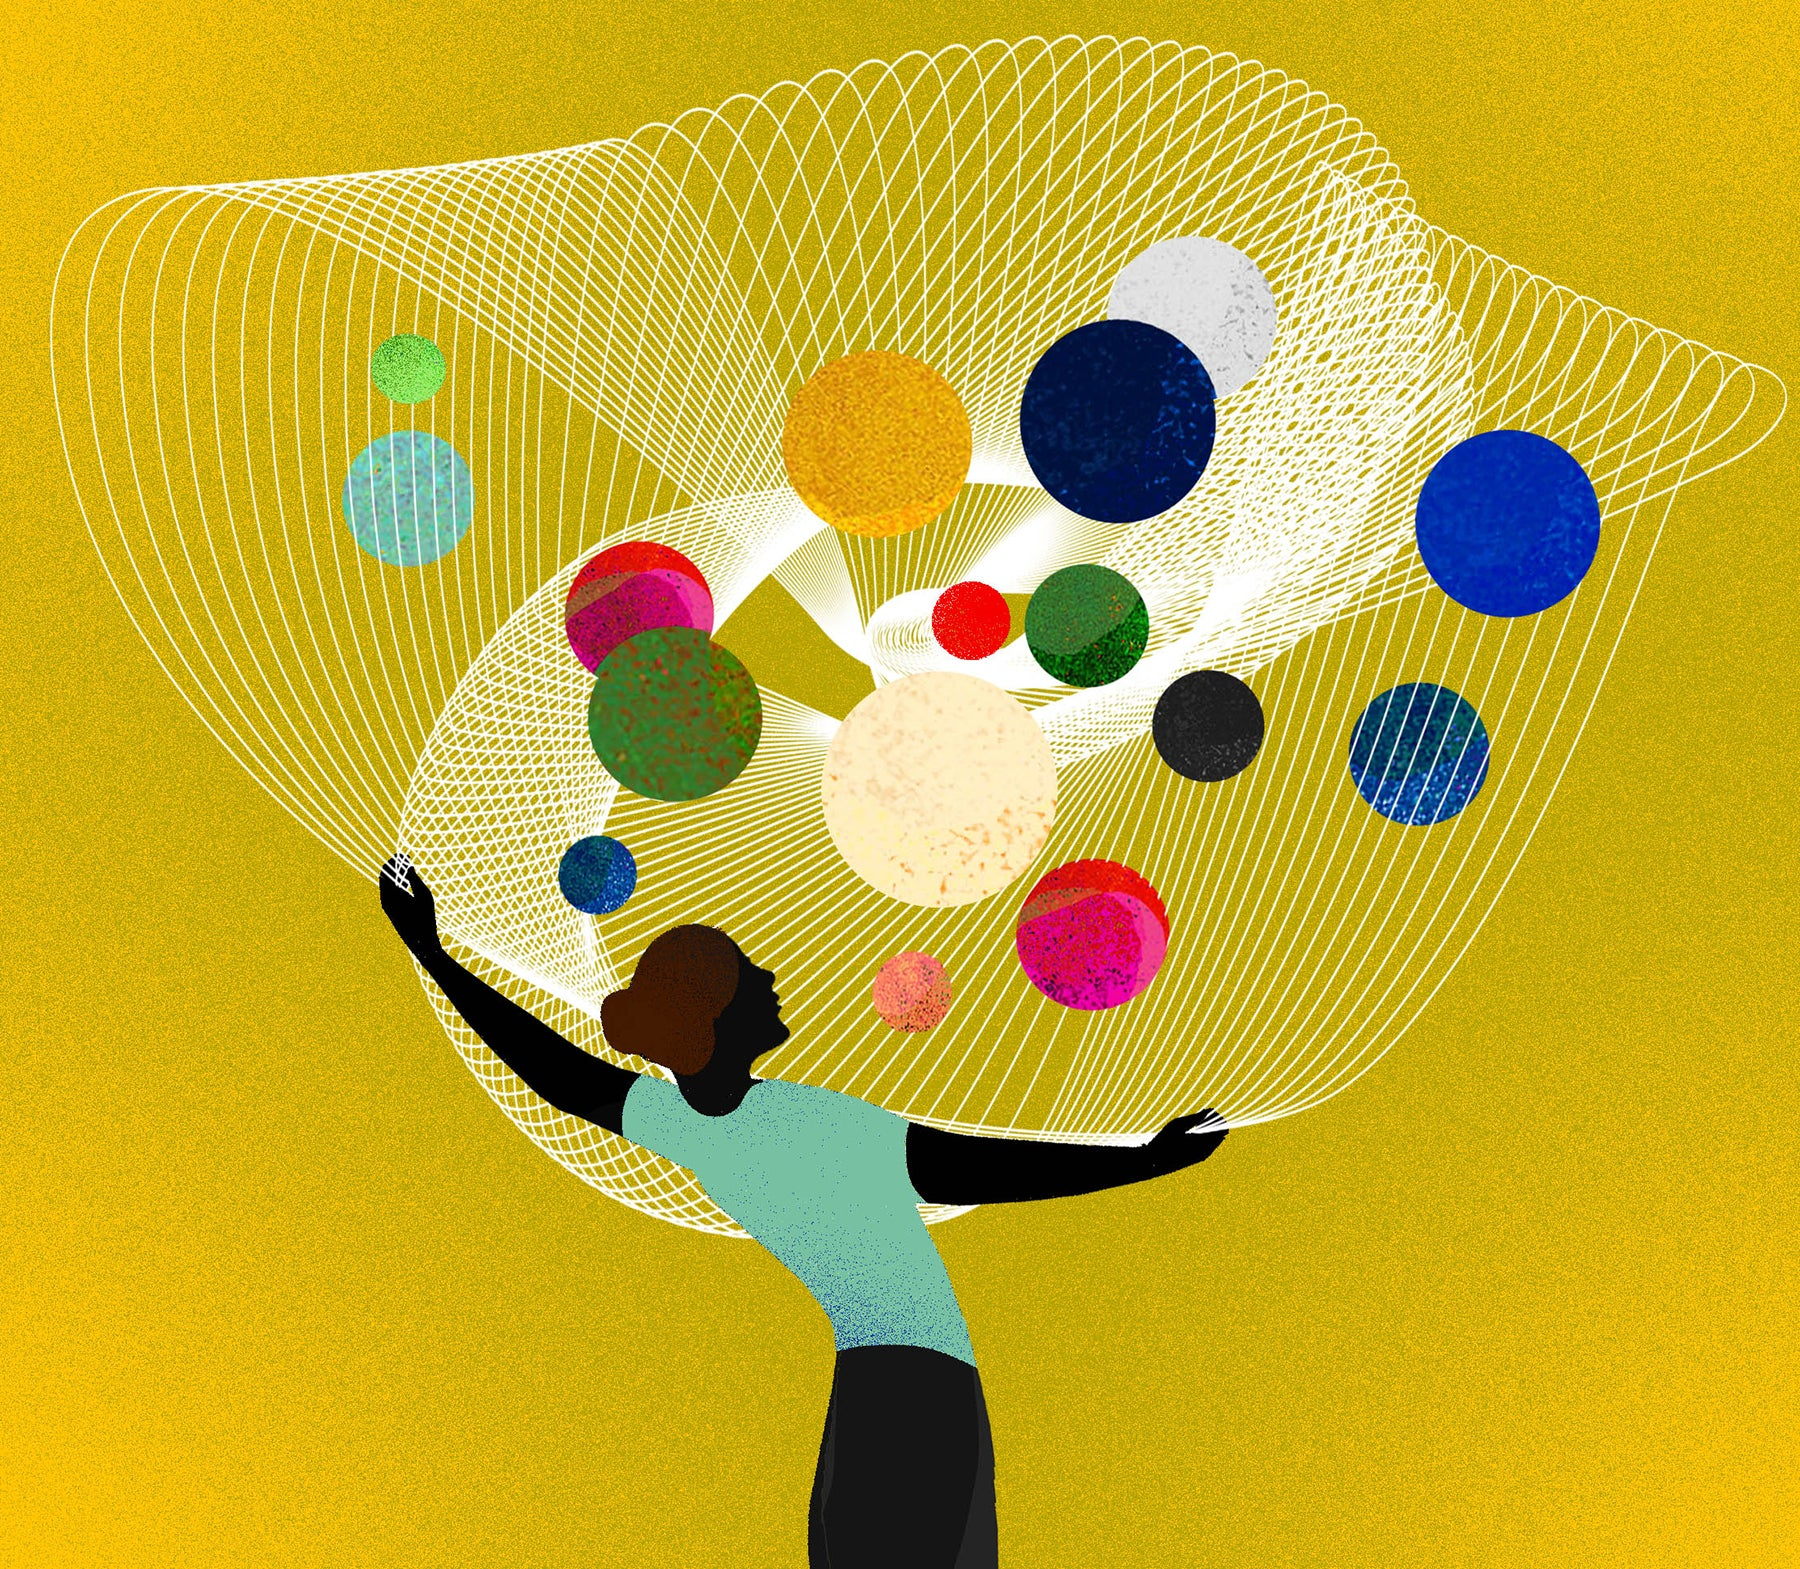 A person juggles multiple colored shapes, representing diversification of platforms and monetization for the creator economy